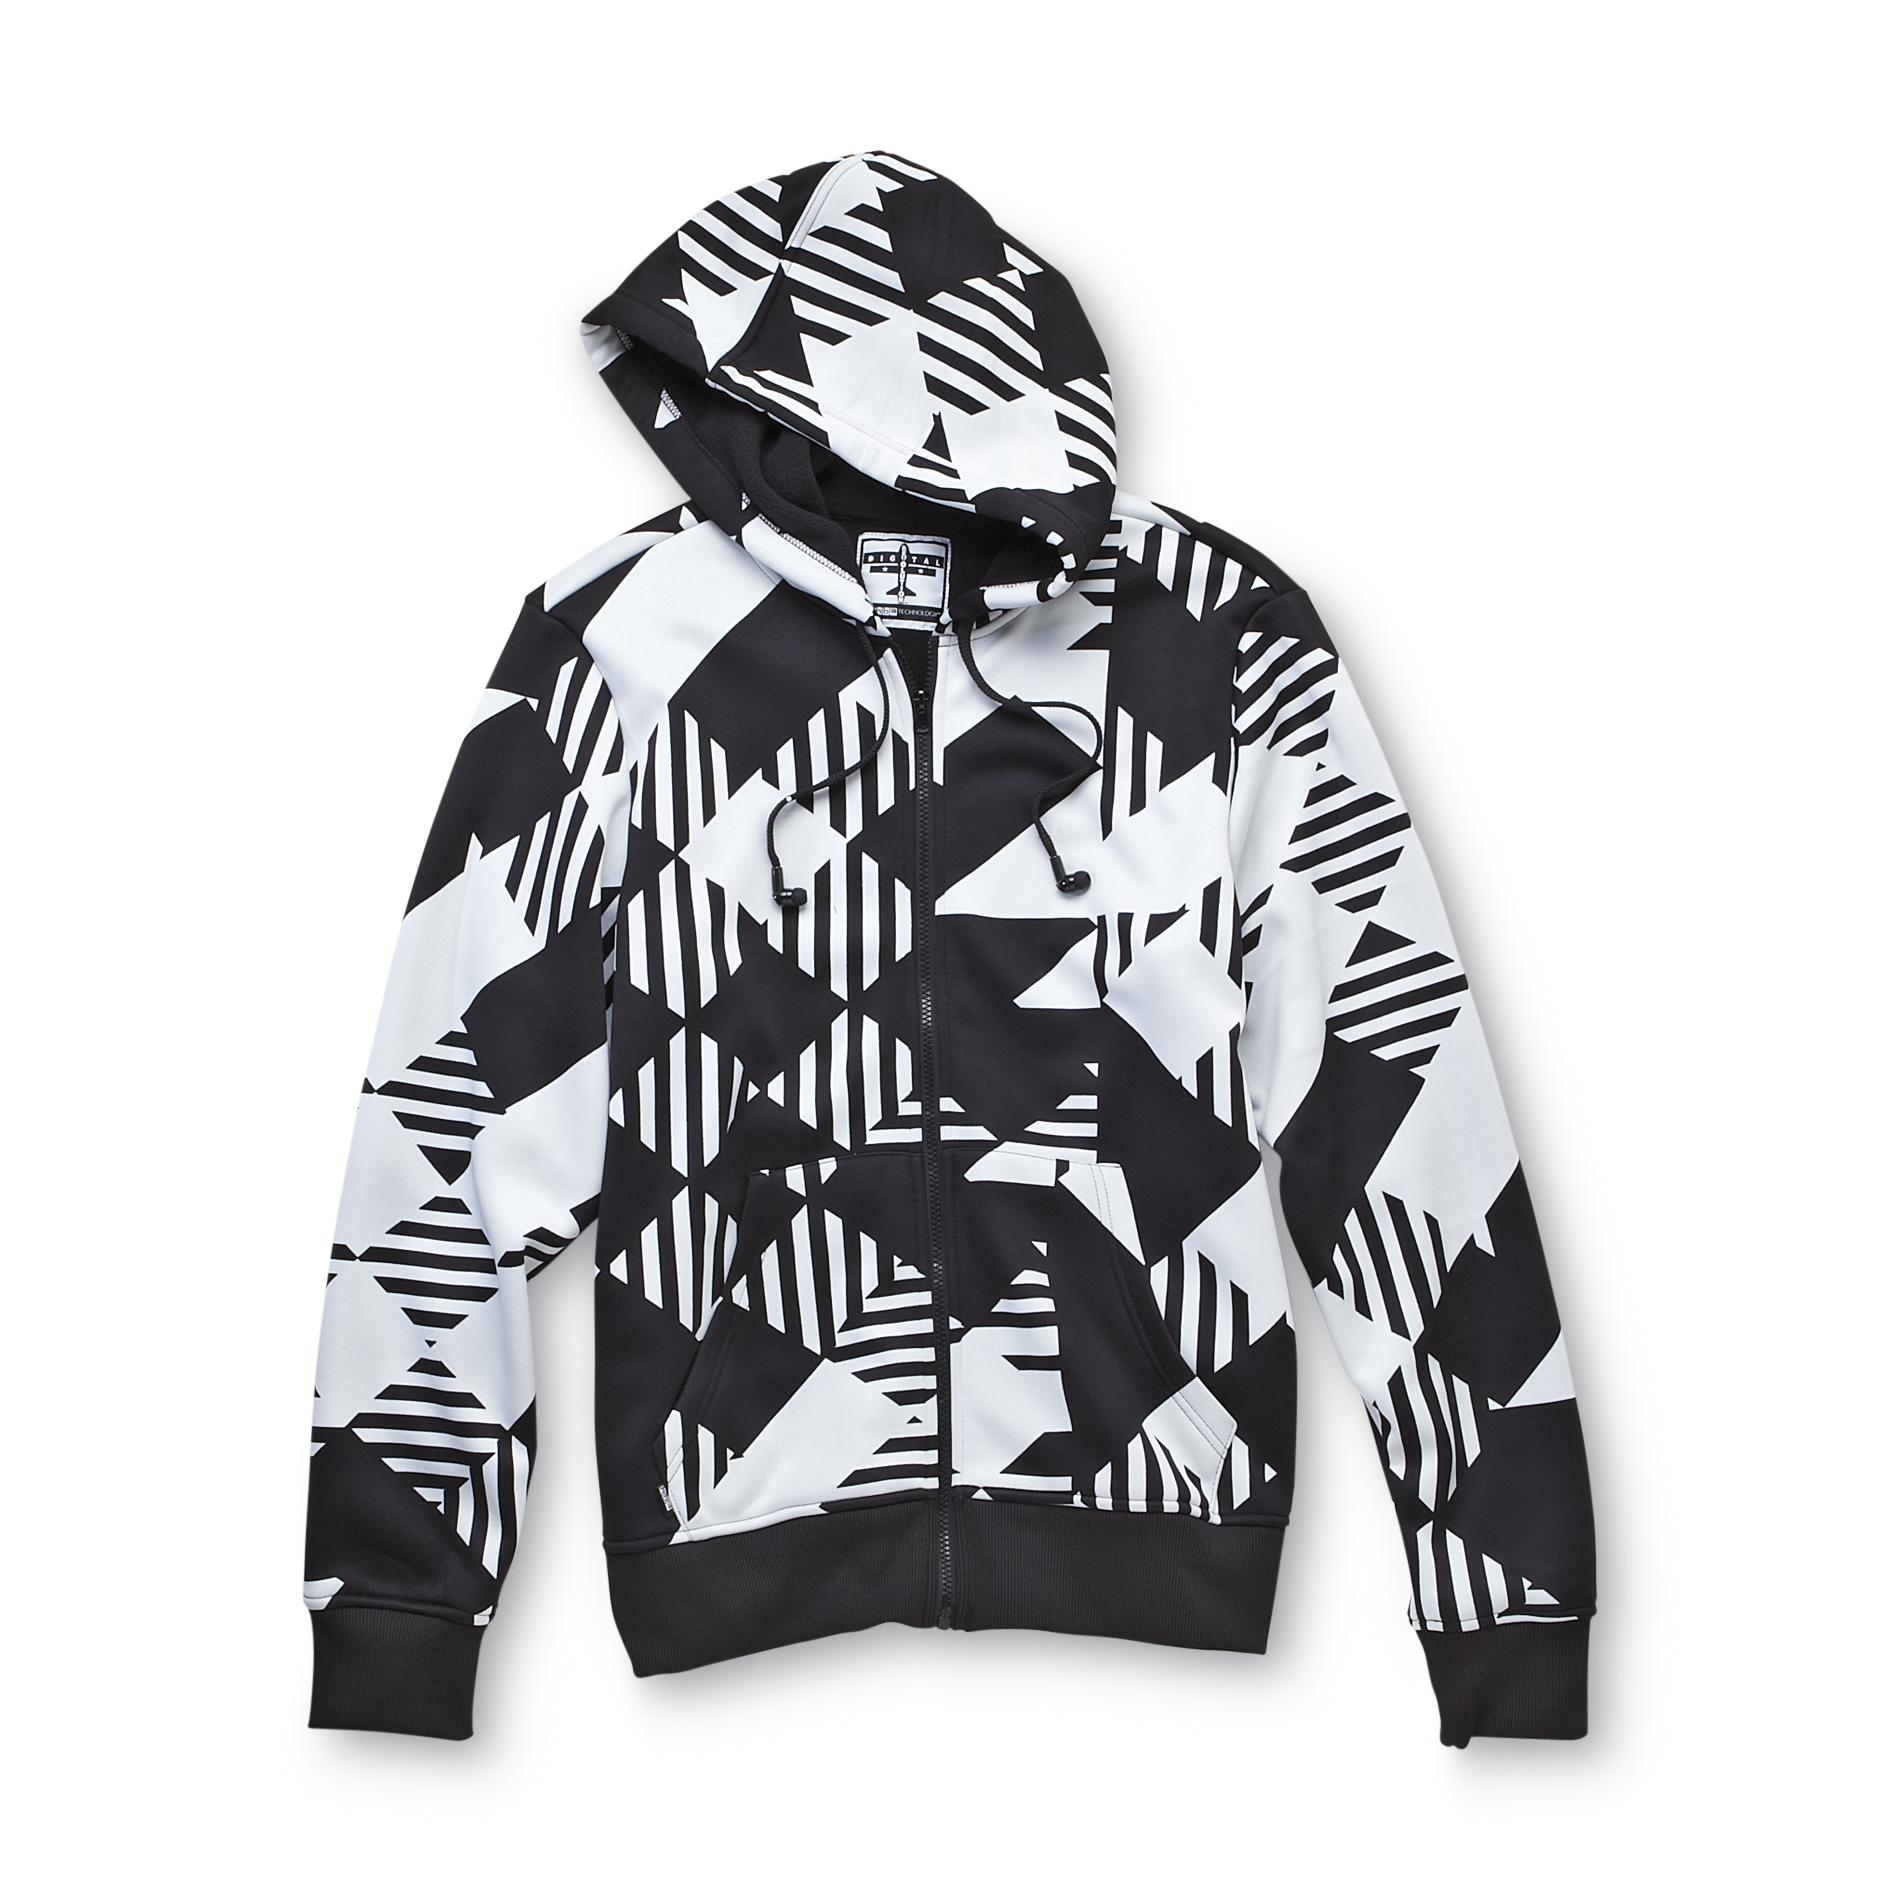 Men's HB3 Fleece Hoodie Jacket - Digital Check